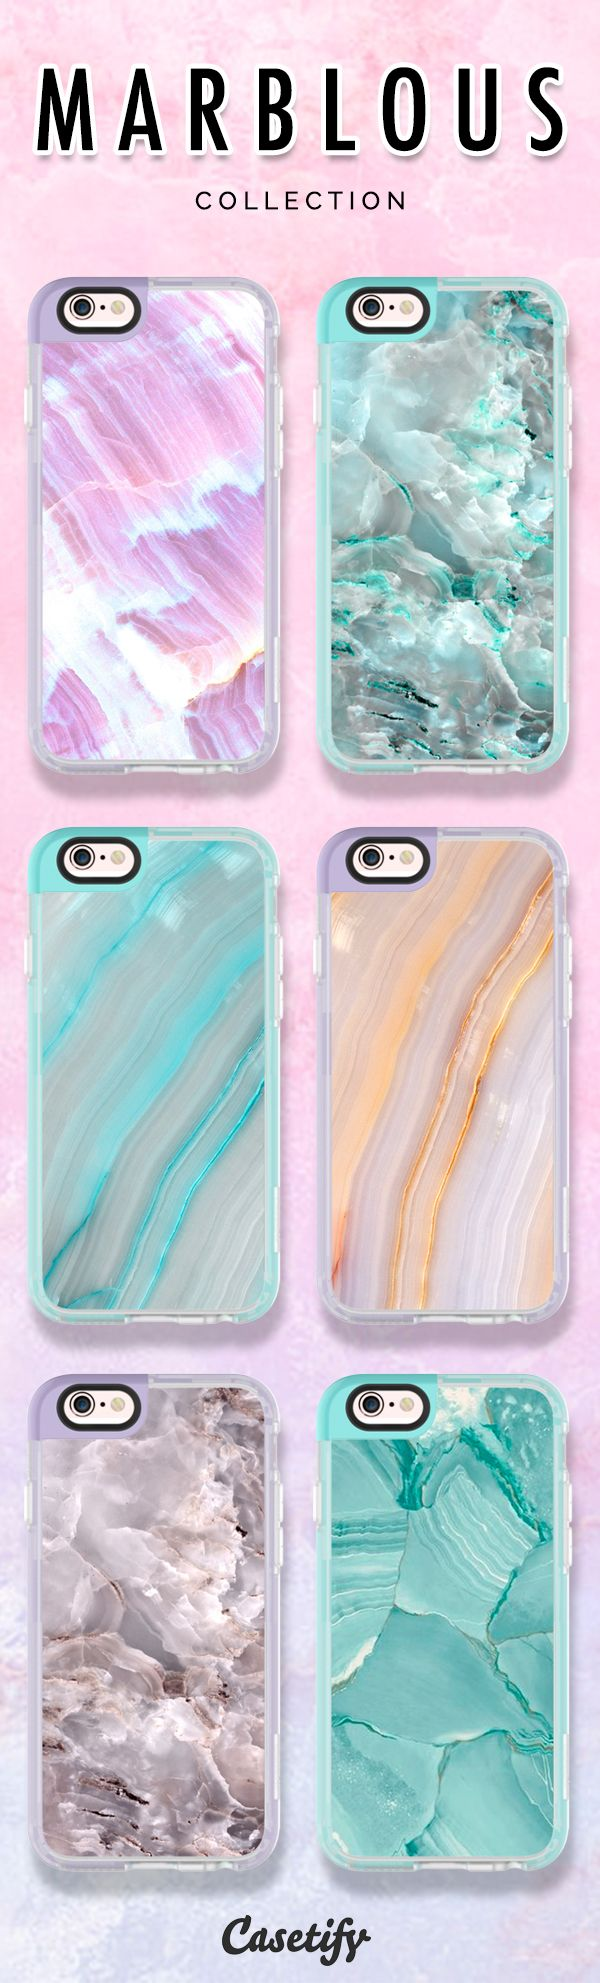 Check out our new Marblous collection! https://www.casetify.com/marblous/all | @casetify